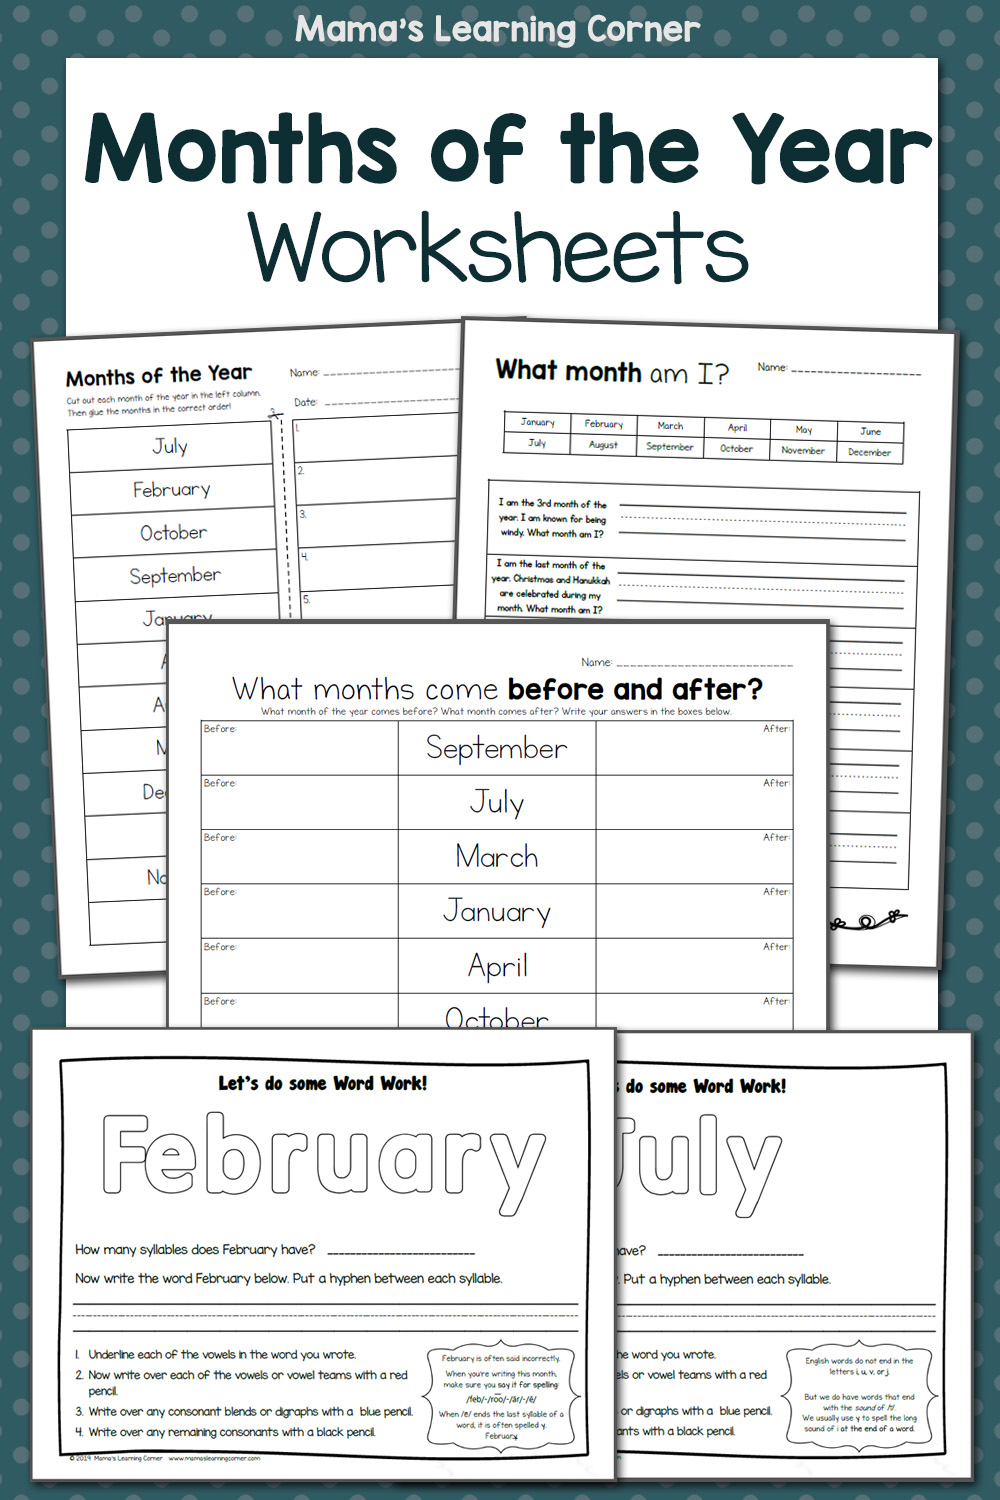 hight resolution of Months of the Year Worksheets - Mamas Learning Corner